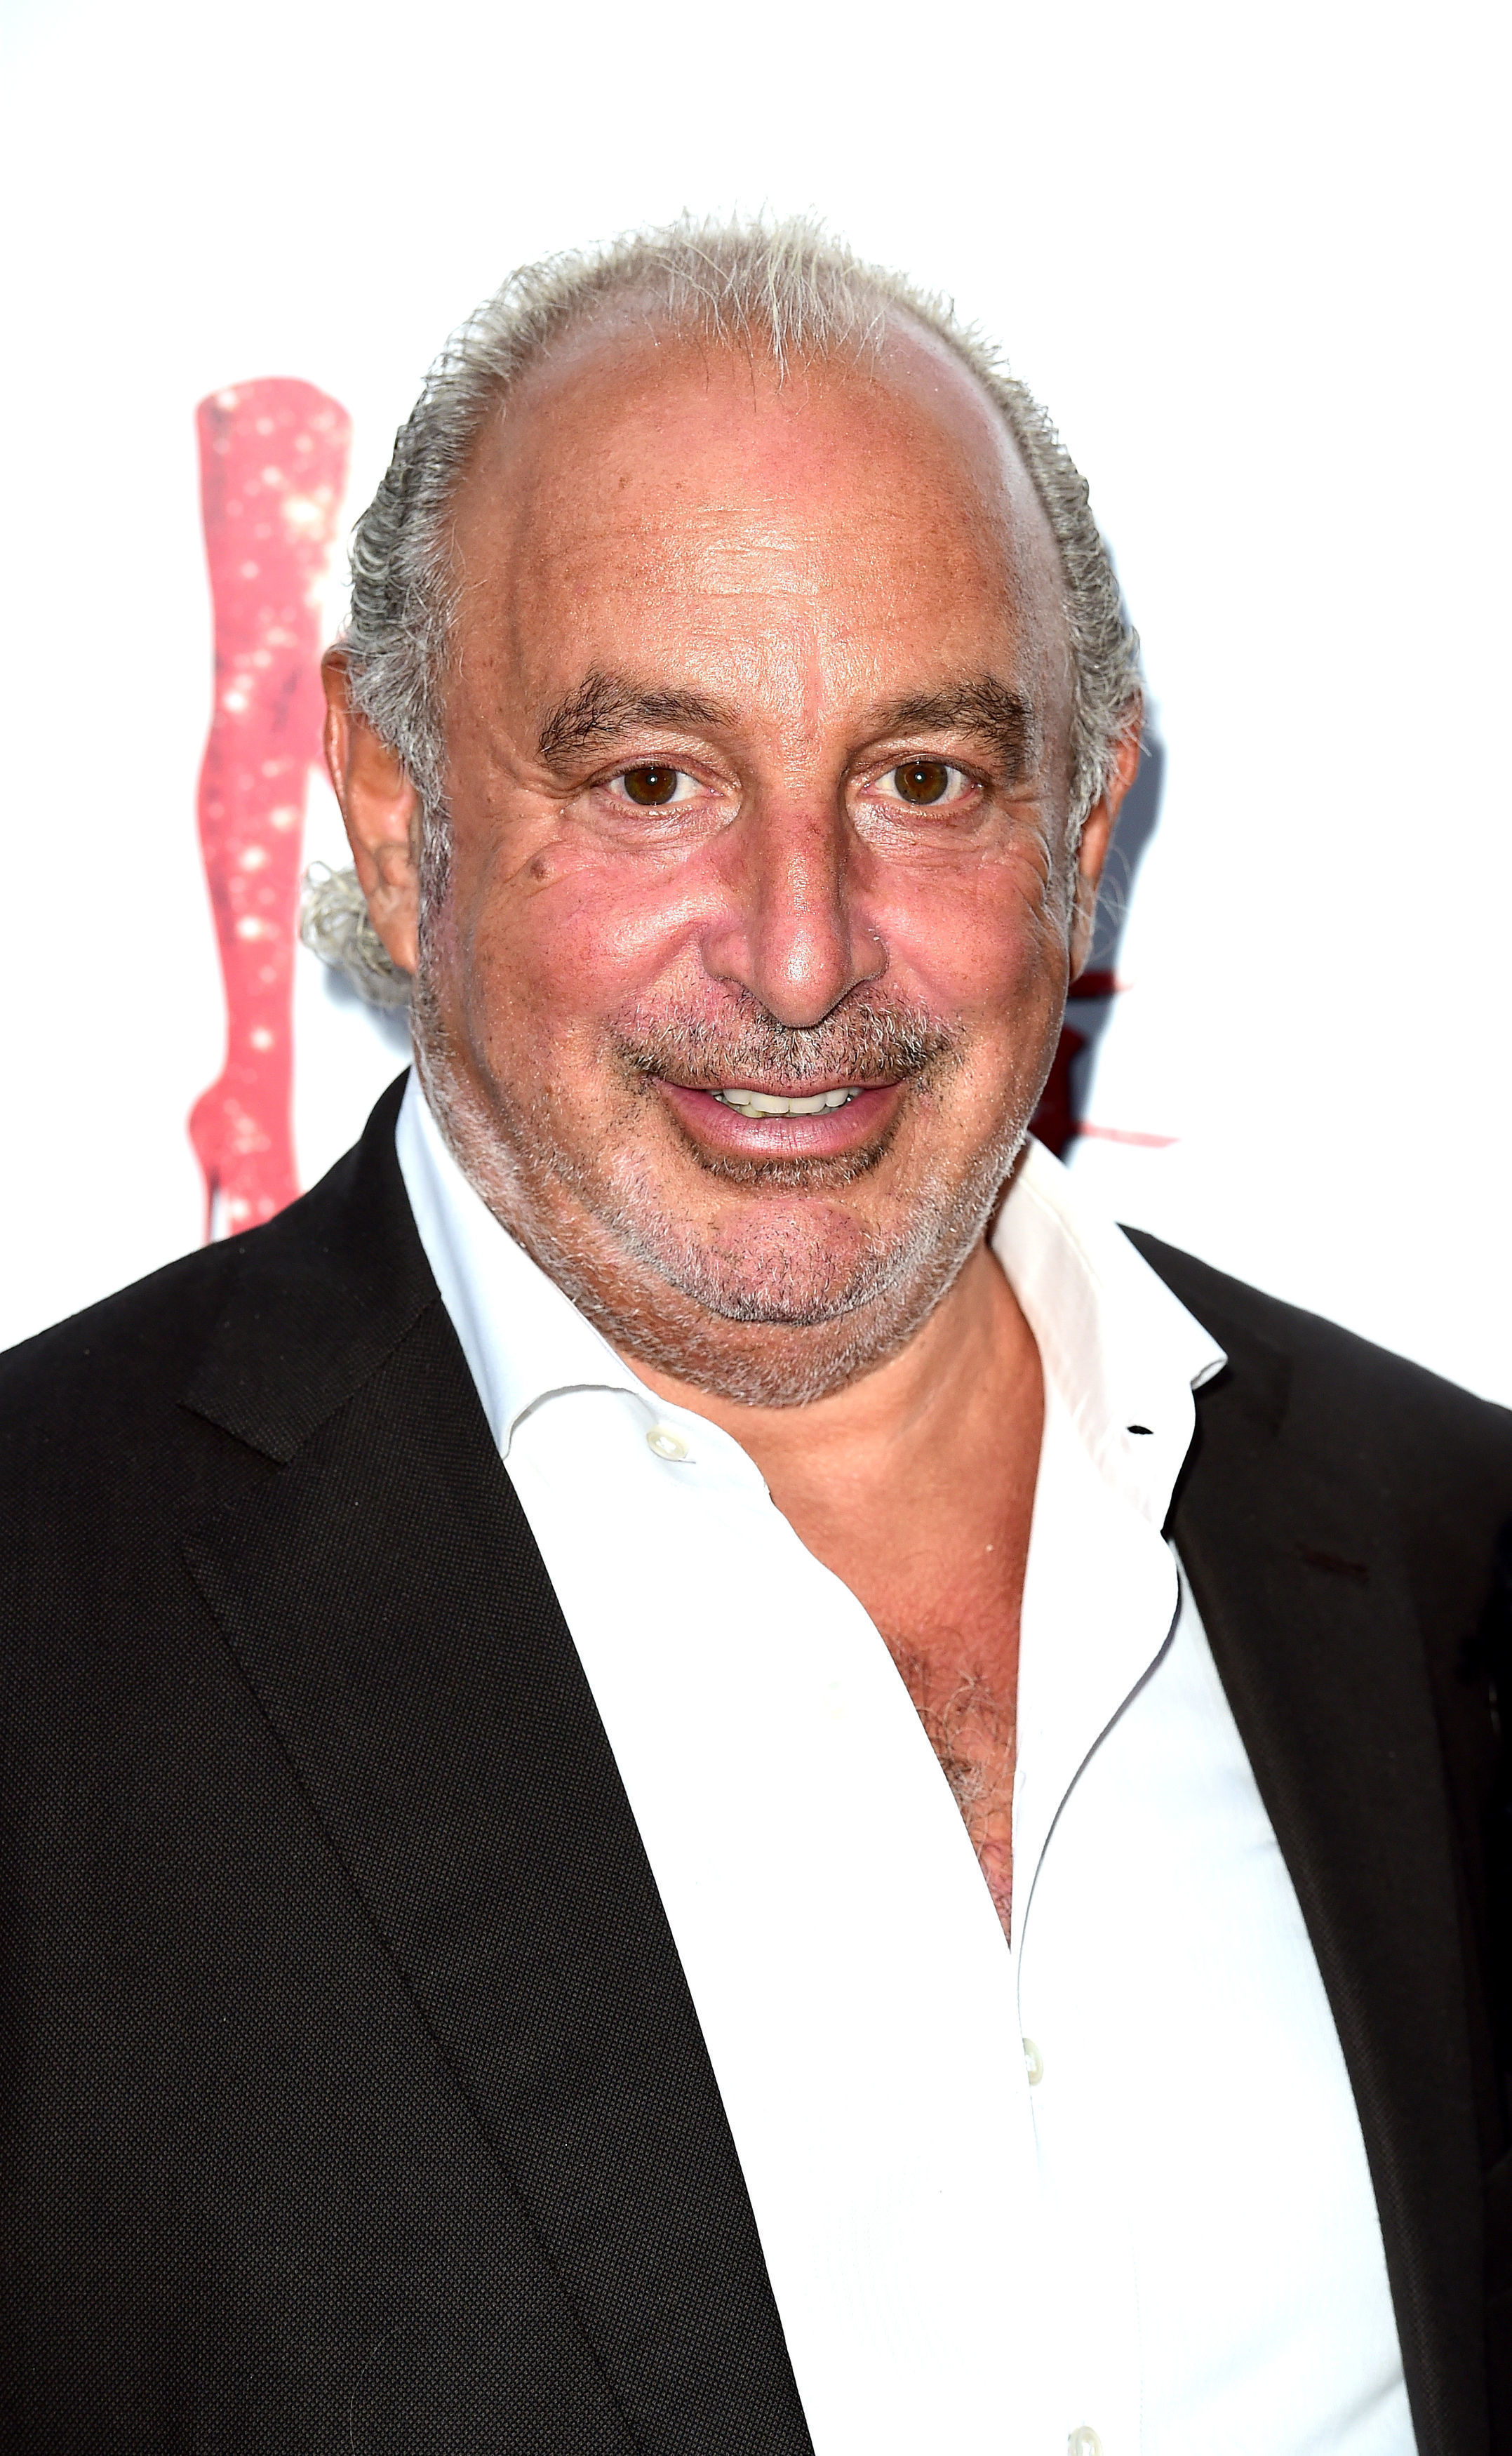 File photo dated 15/9/2015 of Topshop boss Sir Philip Green, who will kick-start his court battle with the accountancy watchdog on Thursday as he seeks a judicial review of a report on PwC's audit of BHS. PRESS ASSOCIATION Photo. Issue date: Wednesday